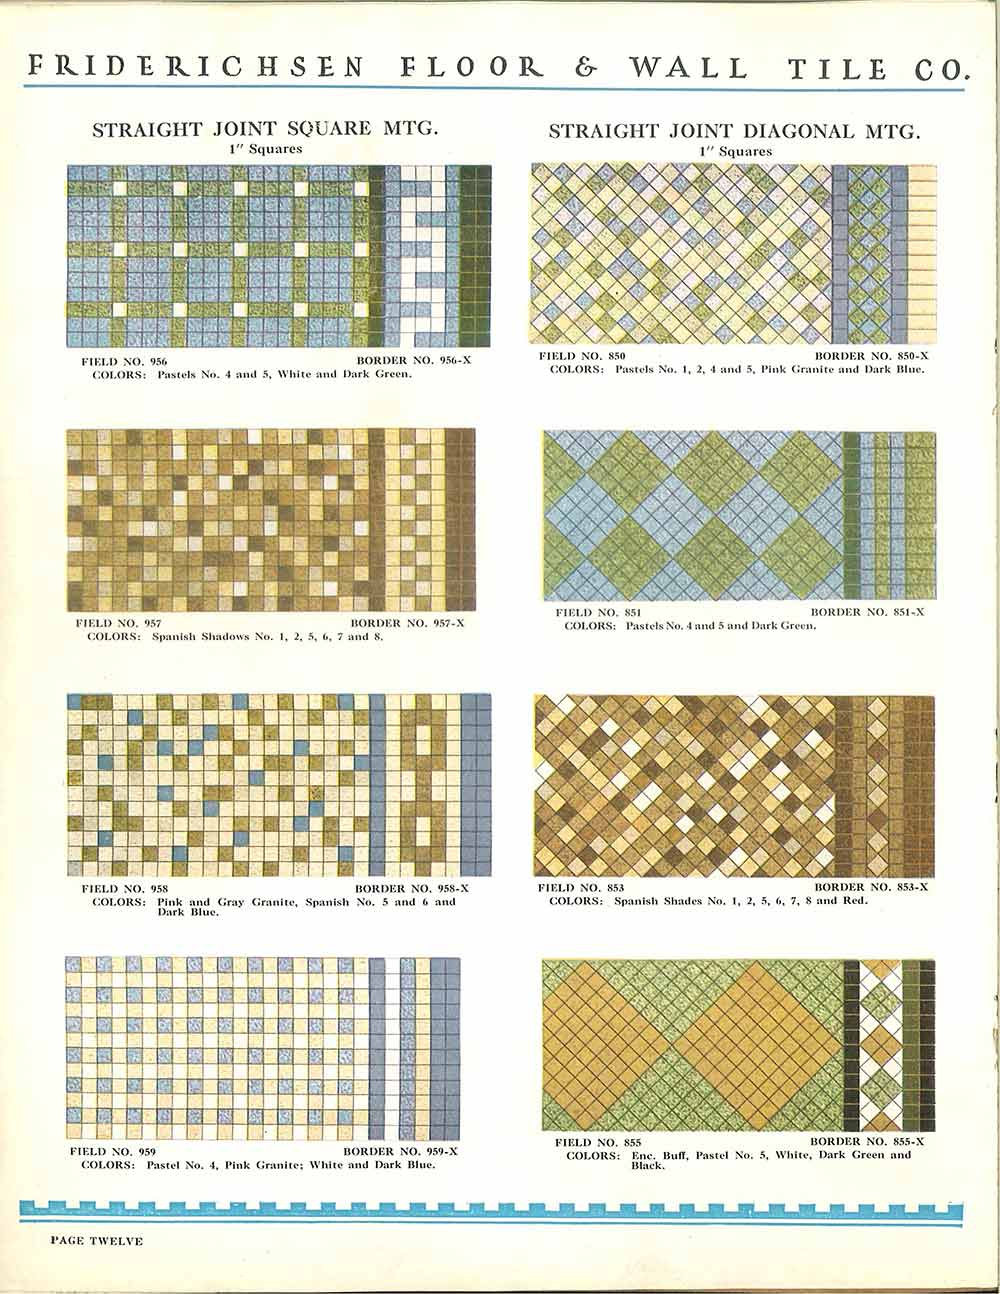 112 patterns of mosaic floor tile in amazing colors for 1930s floor tiles